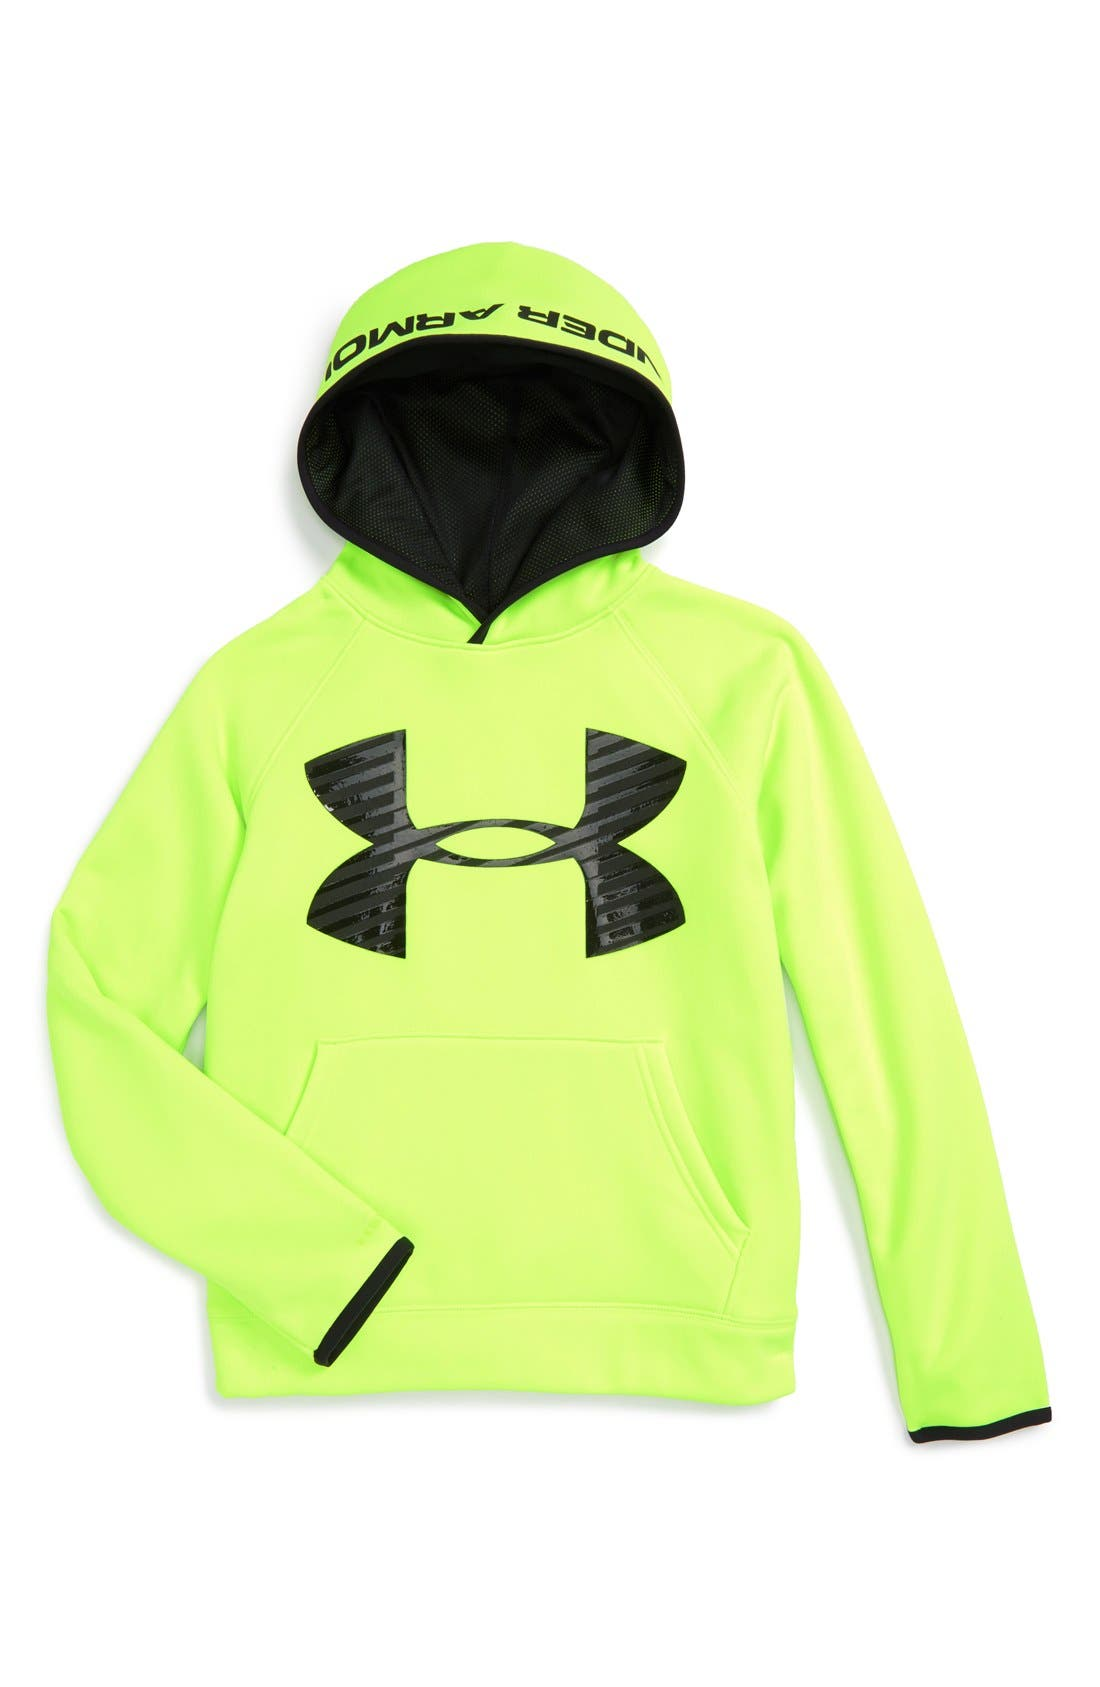 Alternate Image 1 Selected - Under Armour 'Storm Armour®' Water Repellent Hoodie (Little Boys & Big Boys)